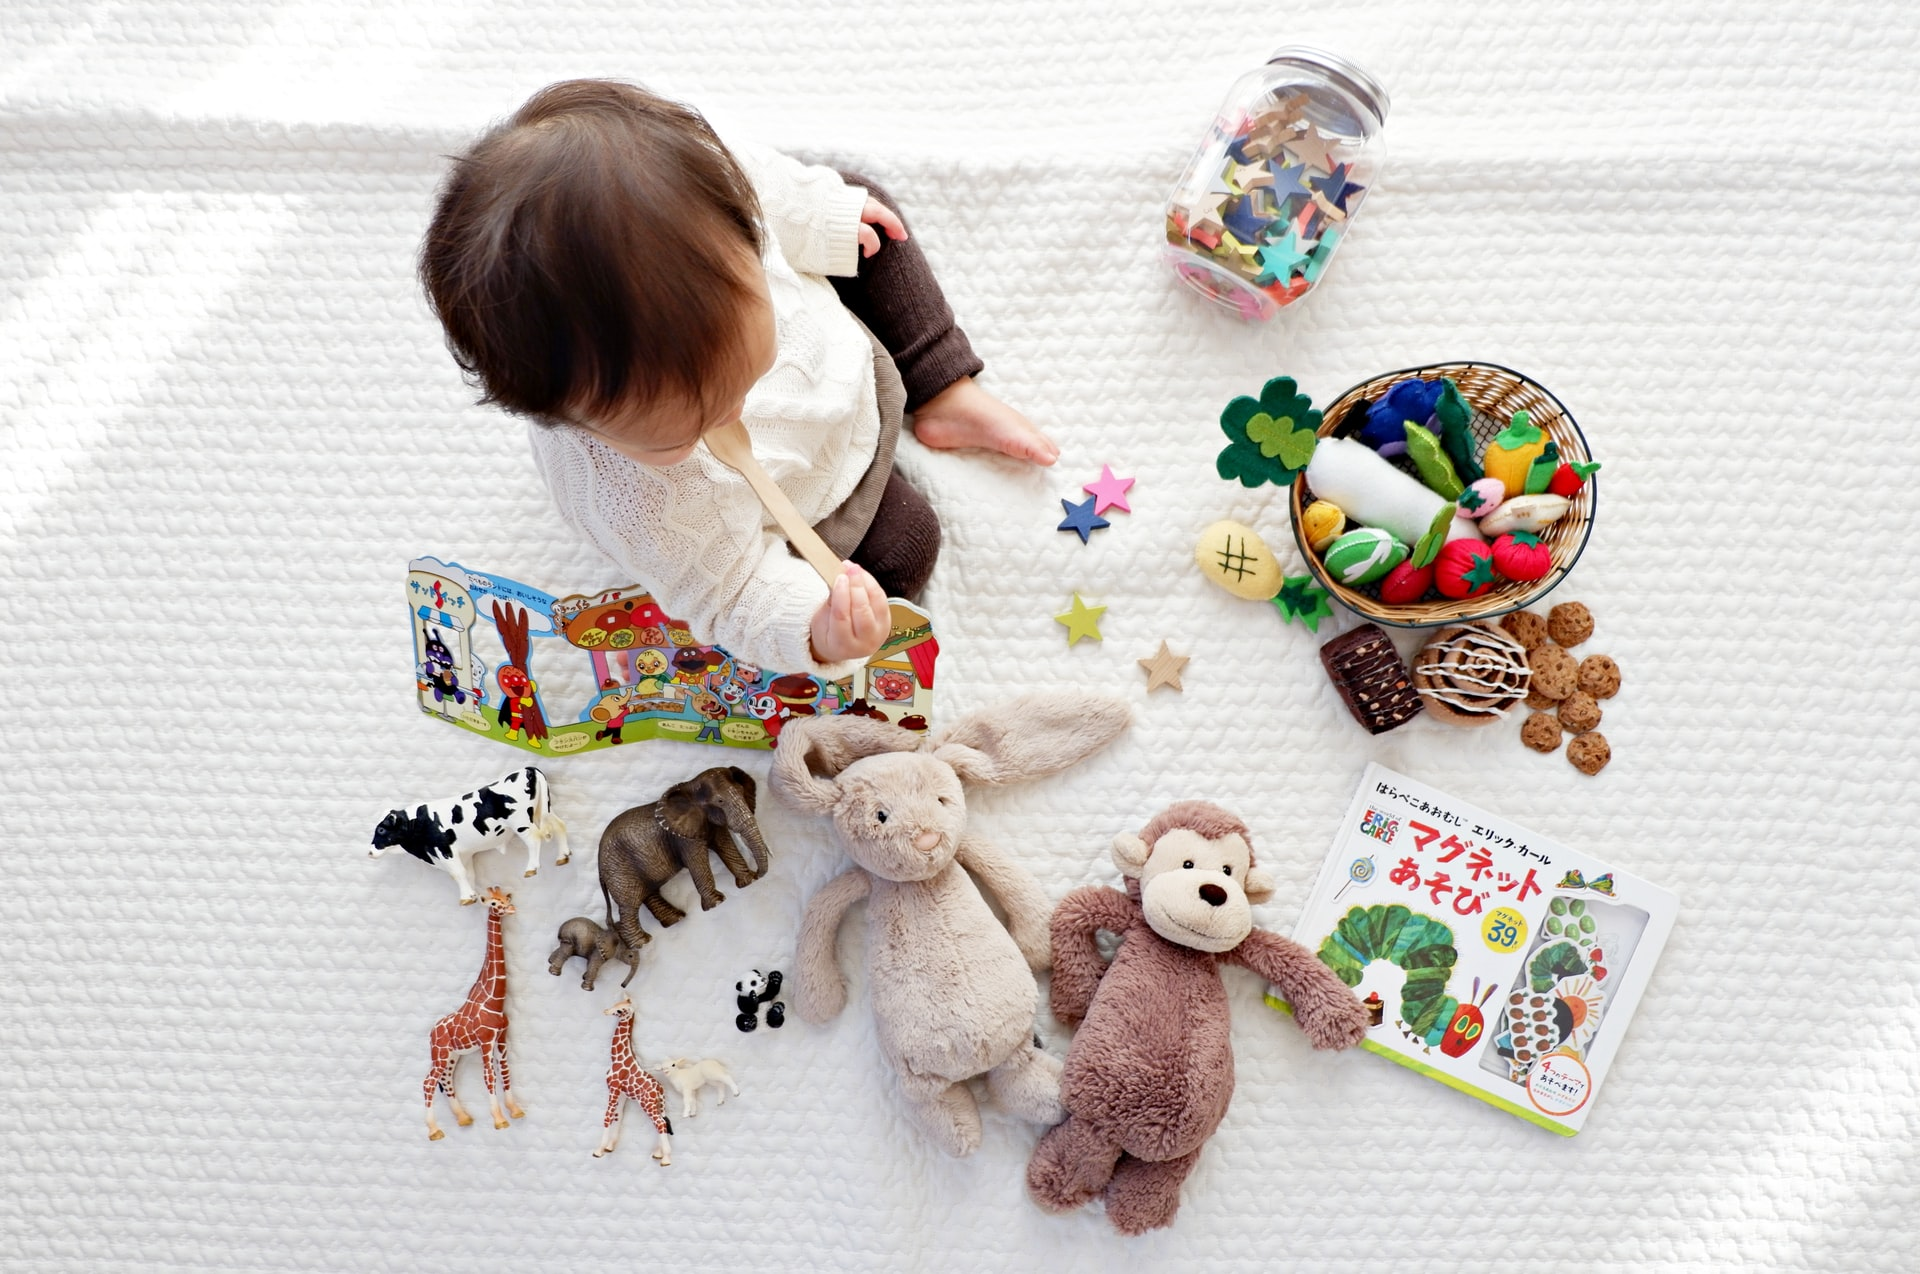 How to clean and disinfect toys at home